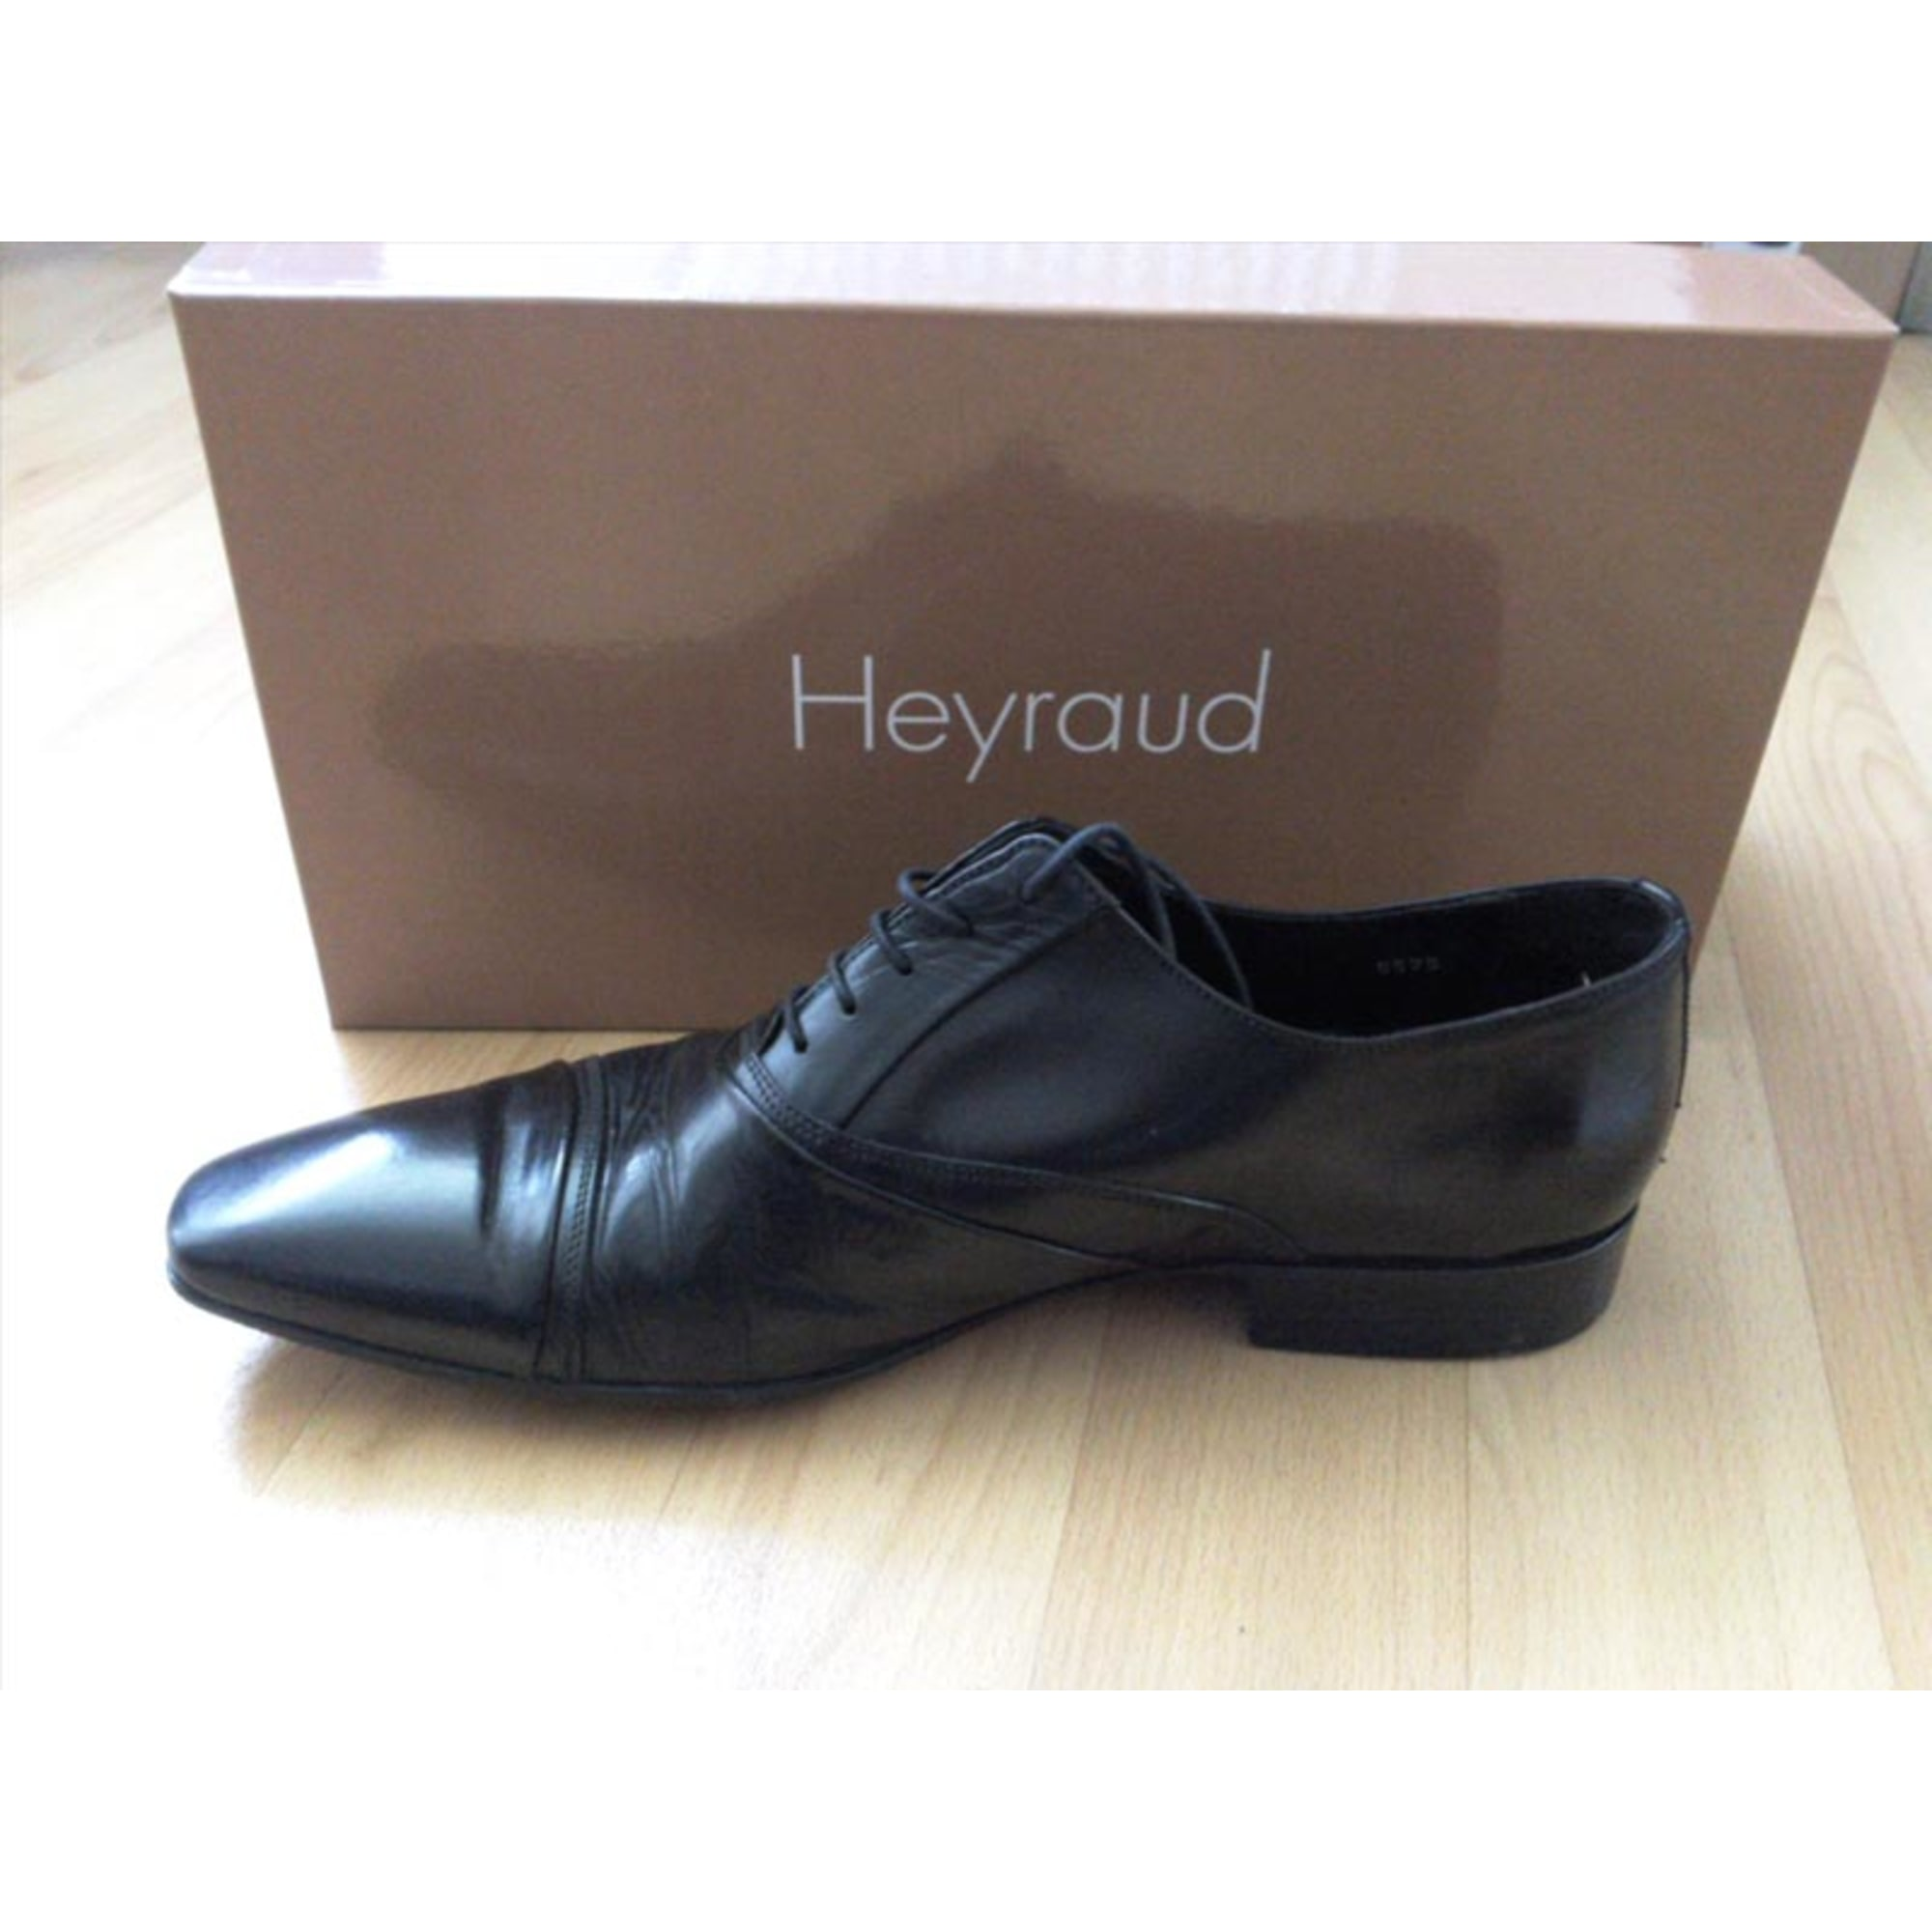 heyraud shoes